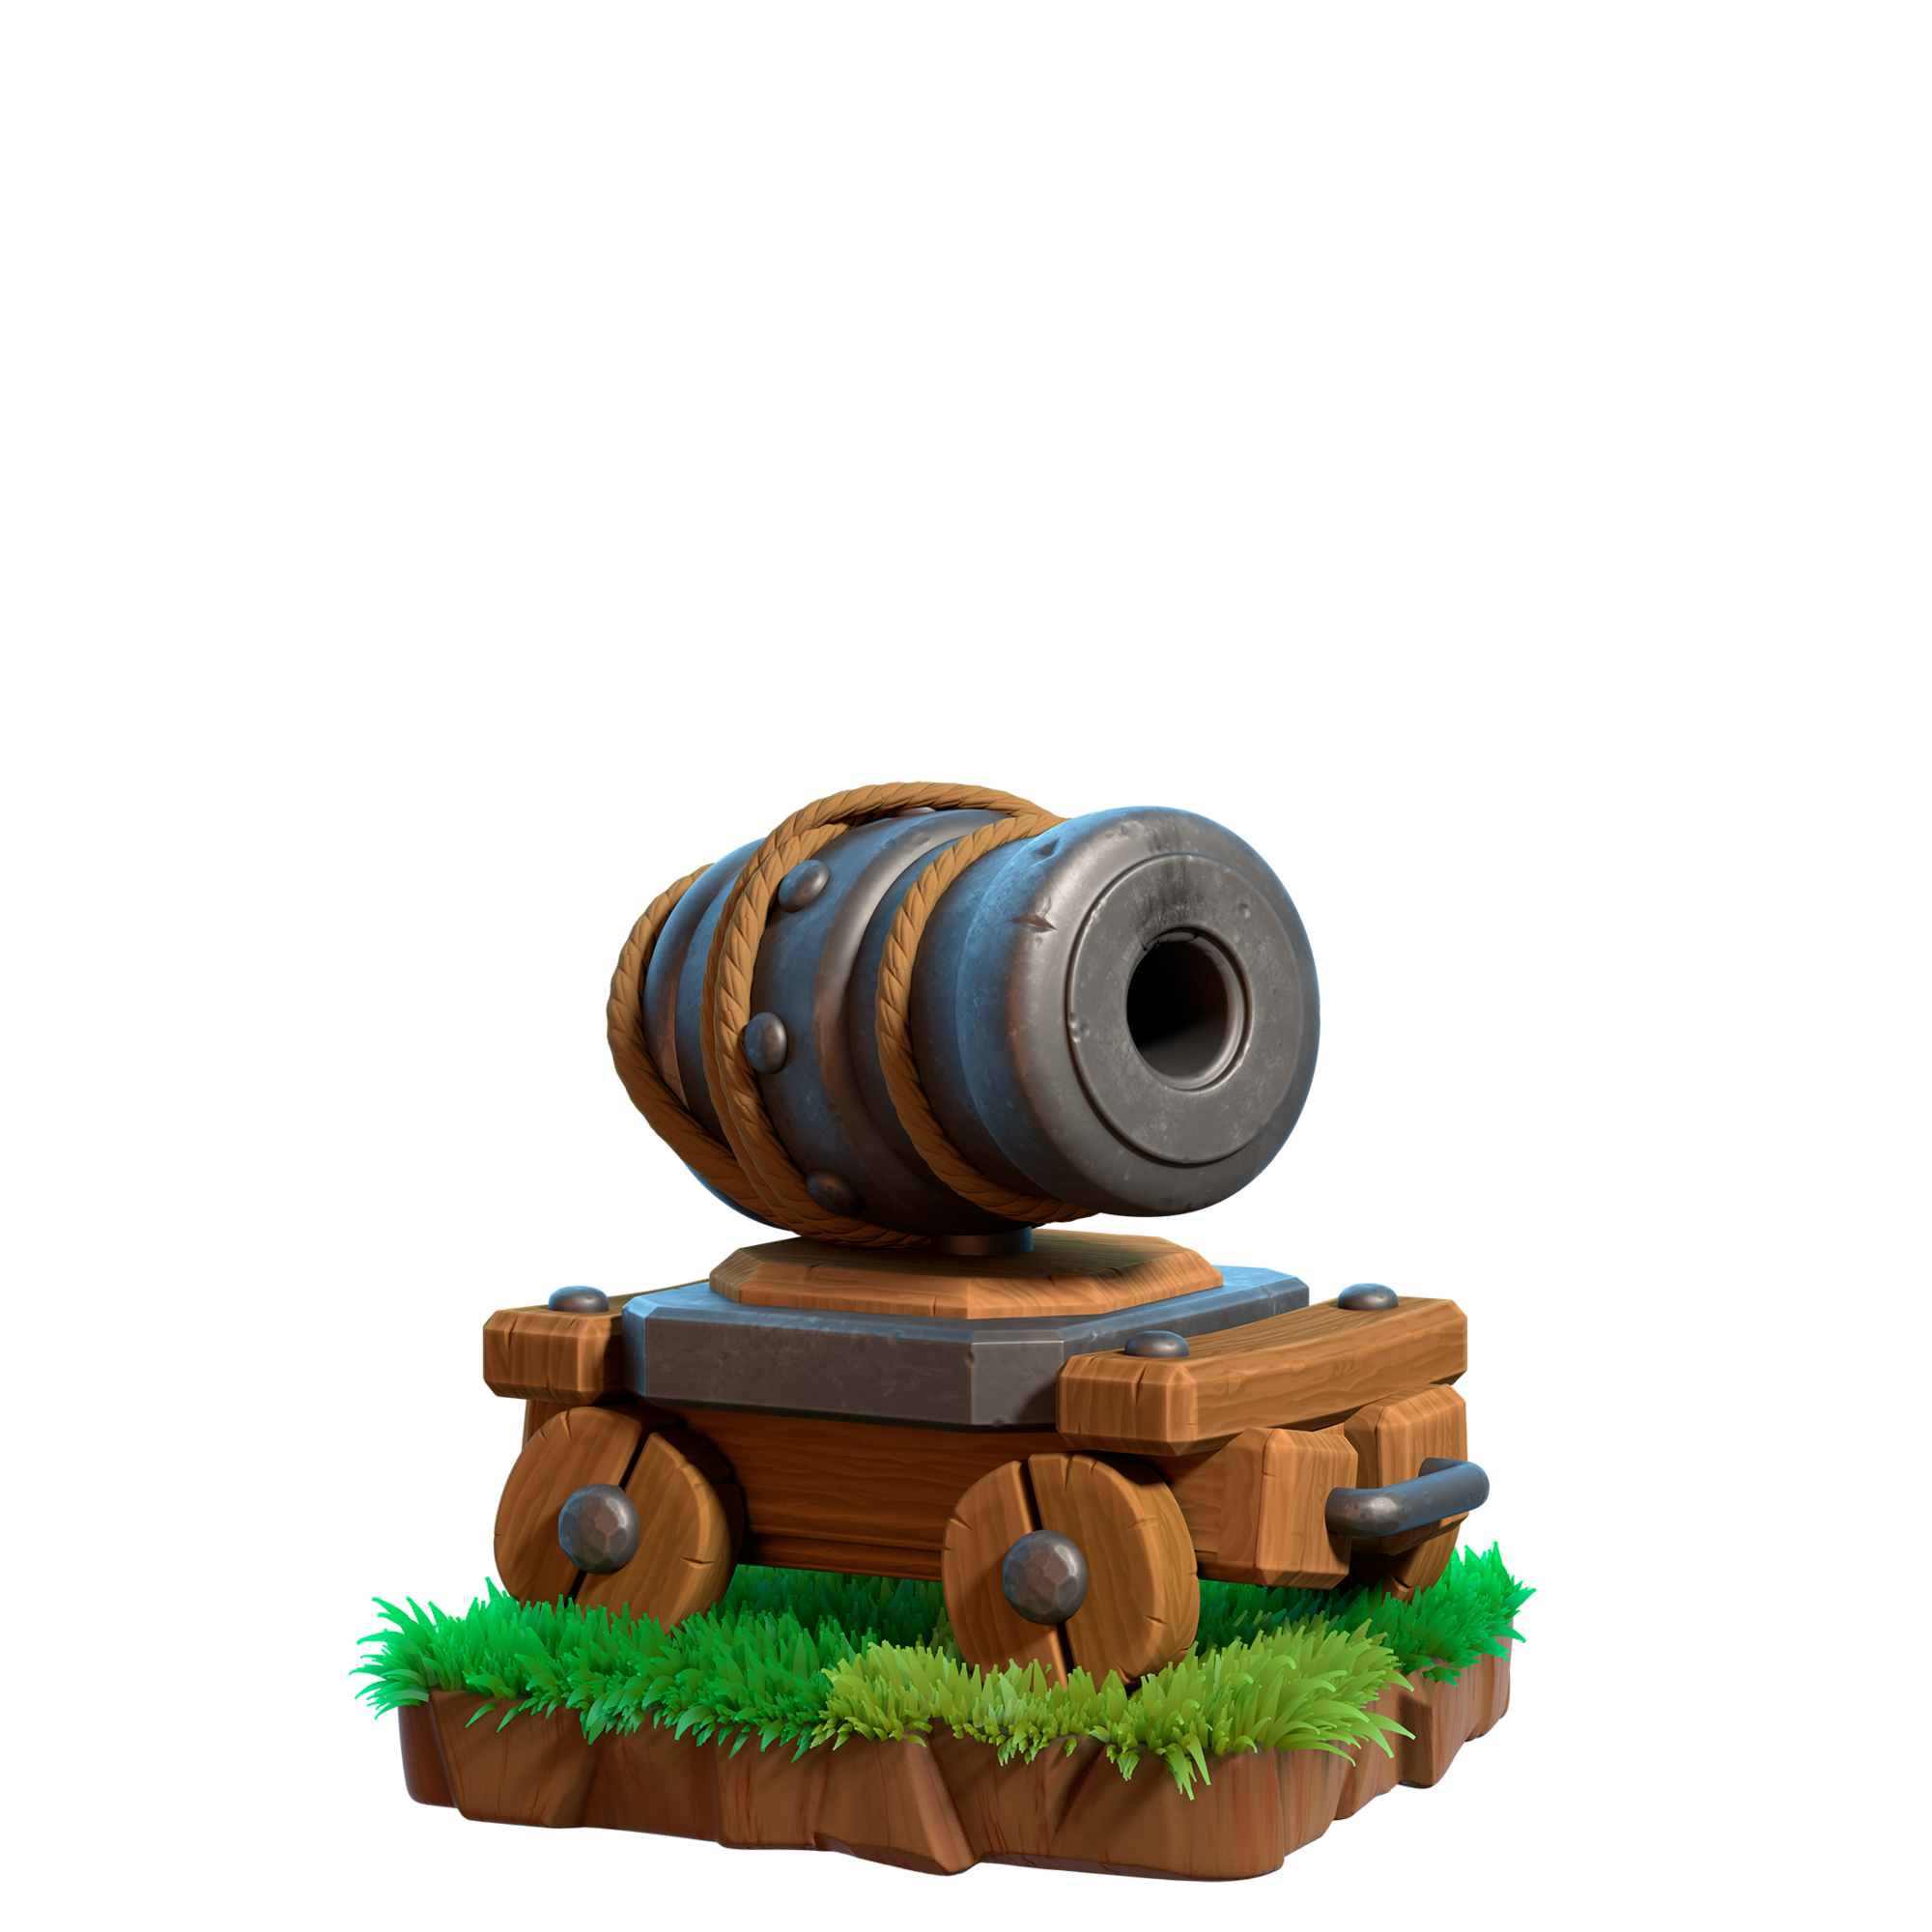 Cannon PNG Background Image PNG Arts 2000x2000